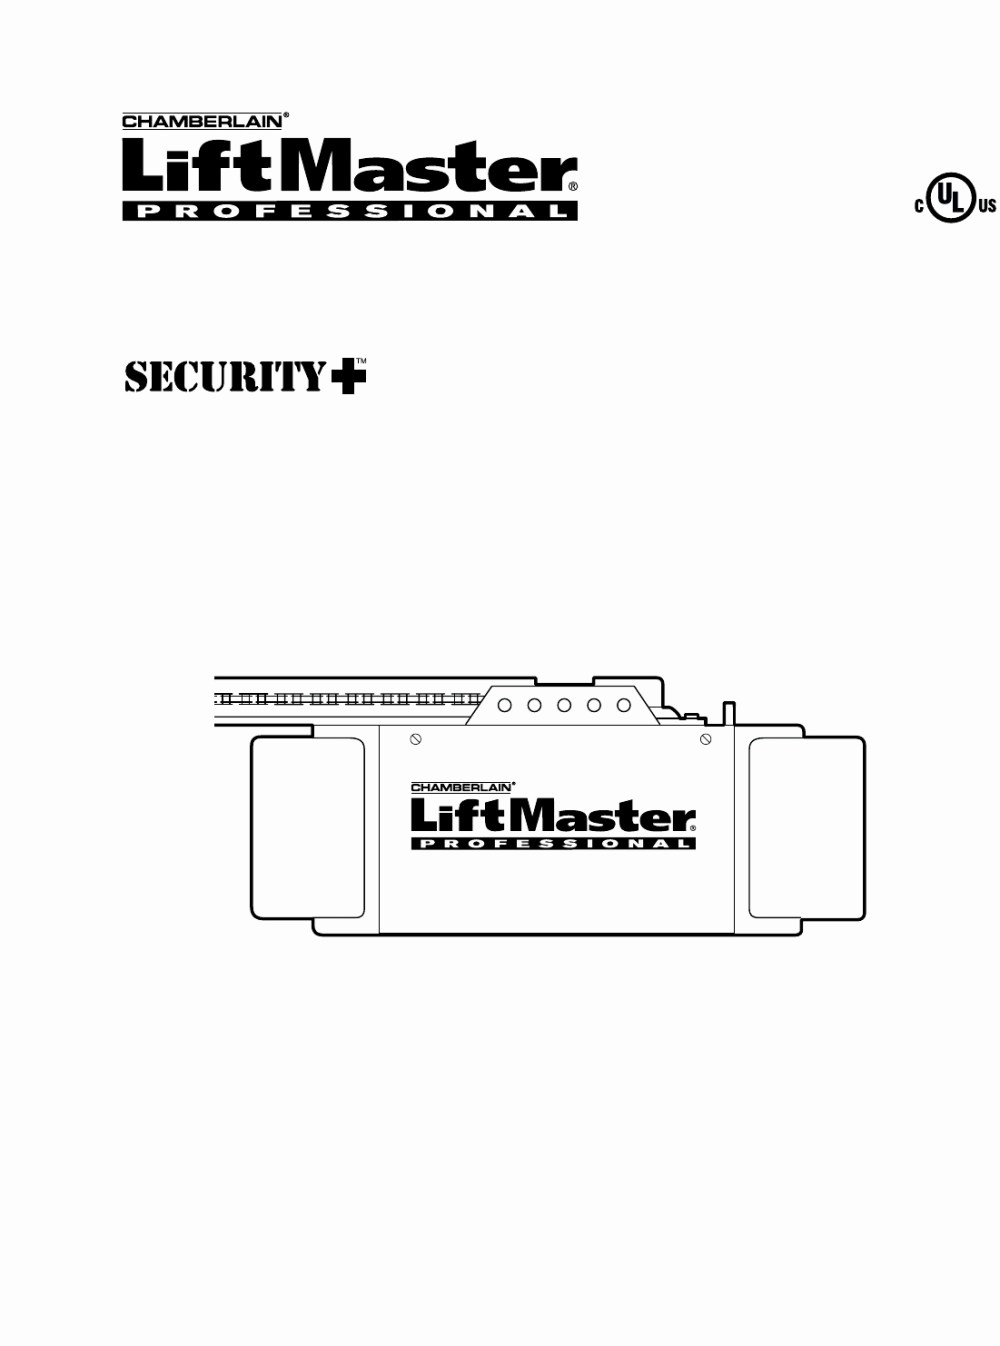 medium resolution of craftsman 1 2 hp garage door opener wiring diagram wiring diagram craftsman 1 2 hp